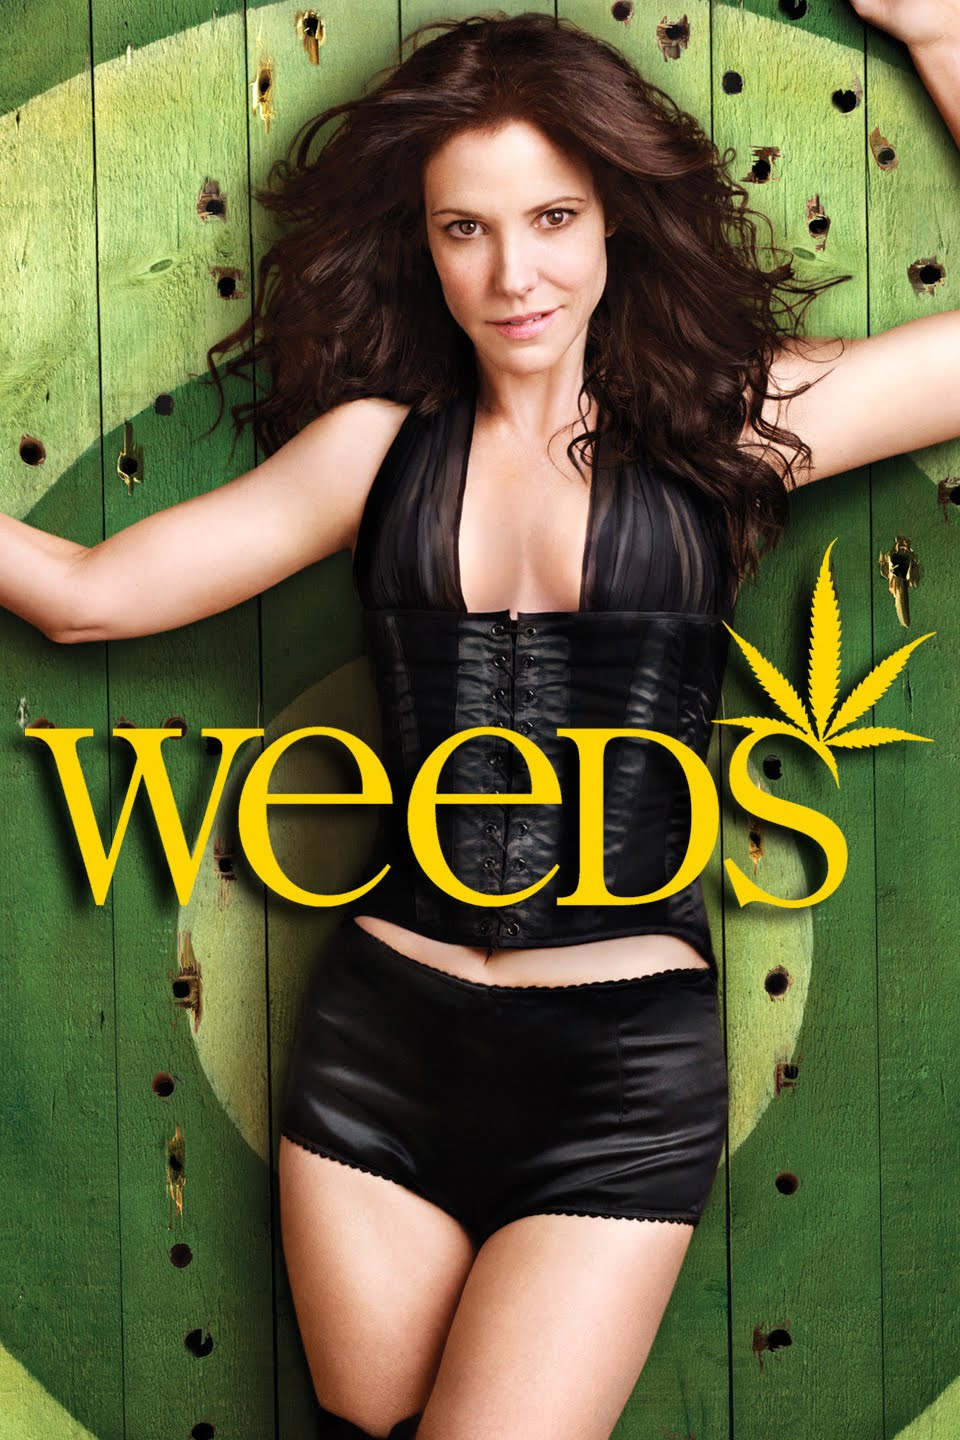 Weeds Season 5 Download Complete 480p HDTV